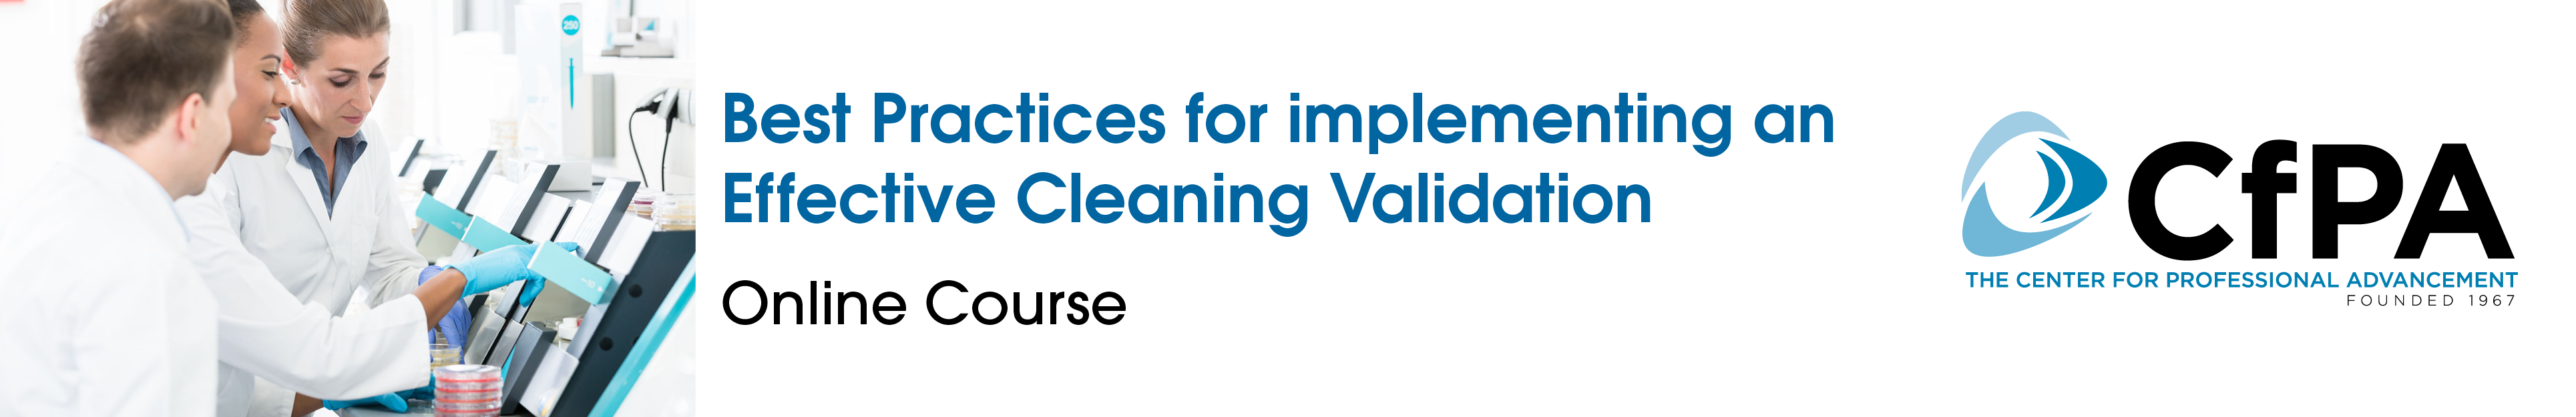 Best Practices for Implementing an Effective Cleaning Validation